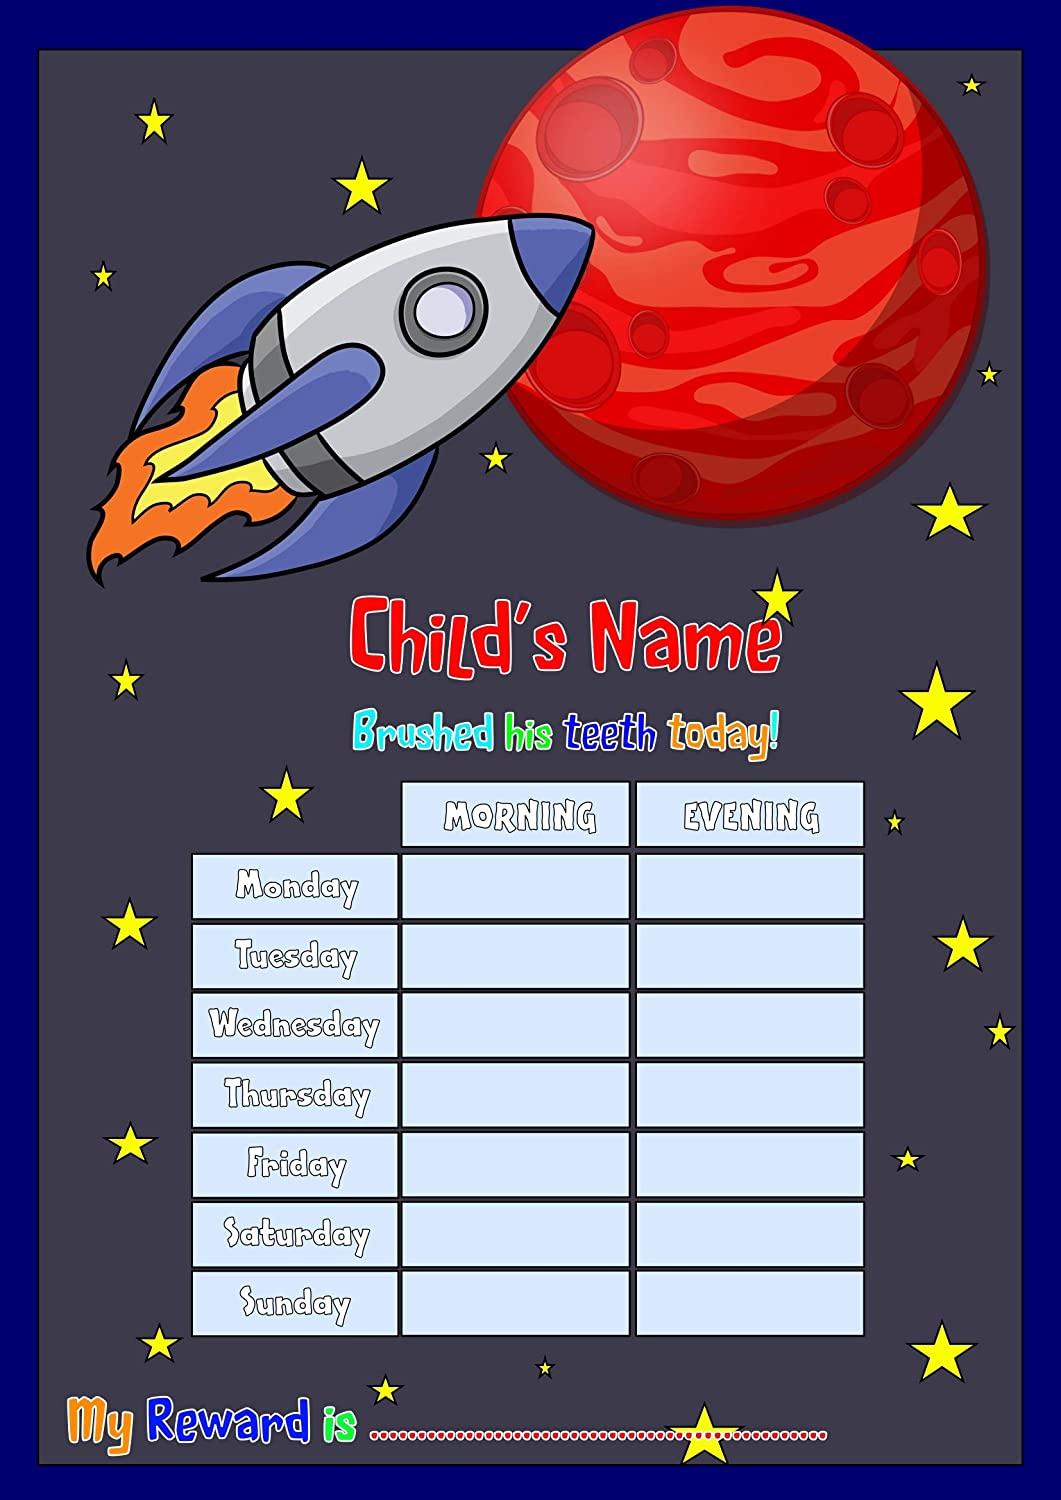 Tooth cleaning routine /& Star Stickers Happy Learners Personalised Teeth Brushing Chart Space Rocket